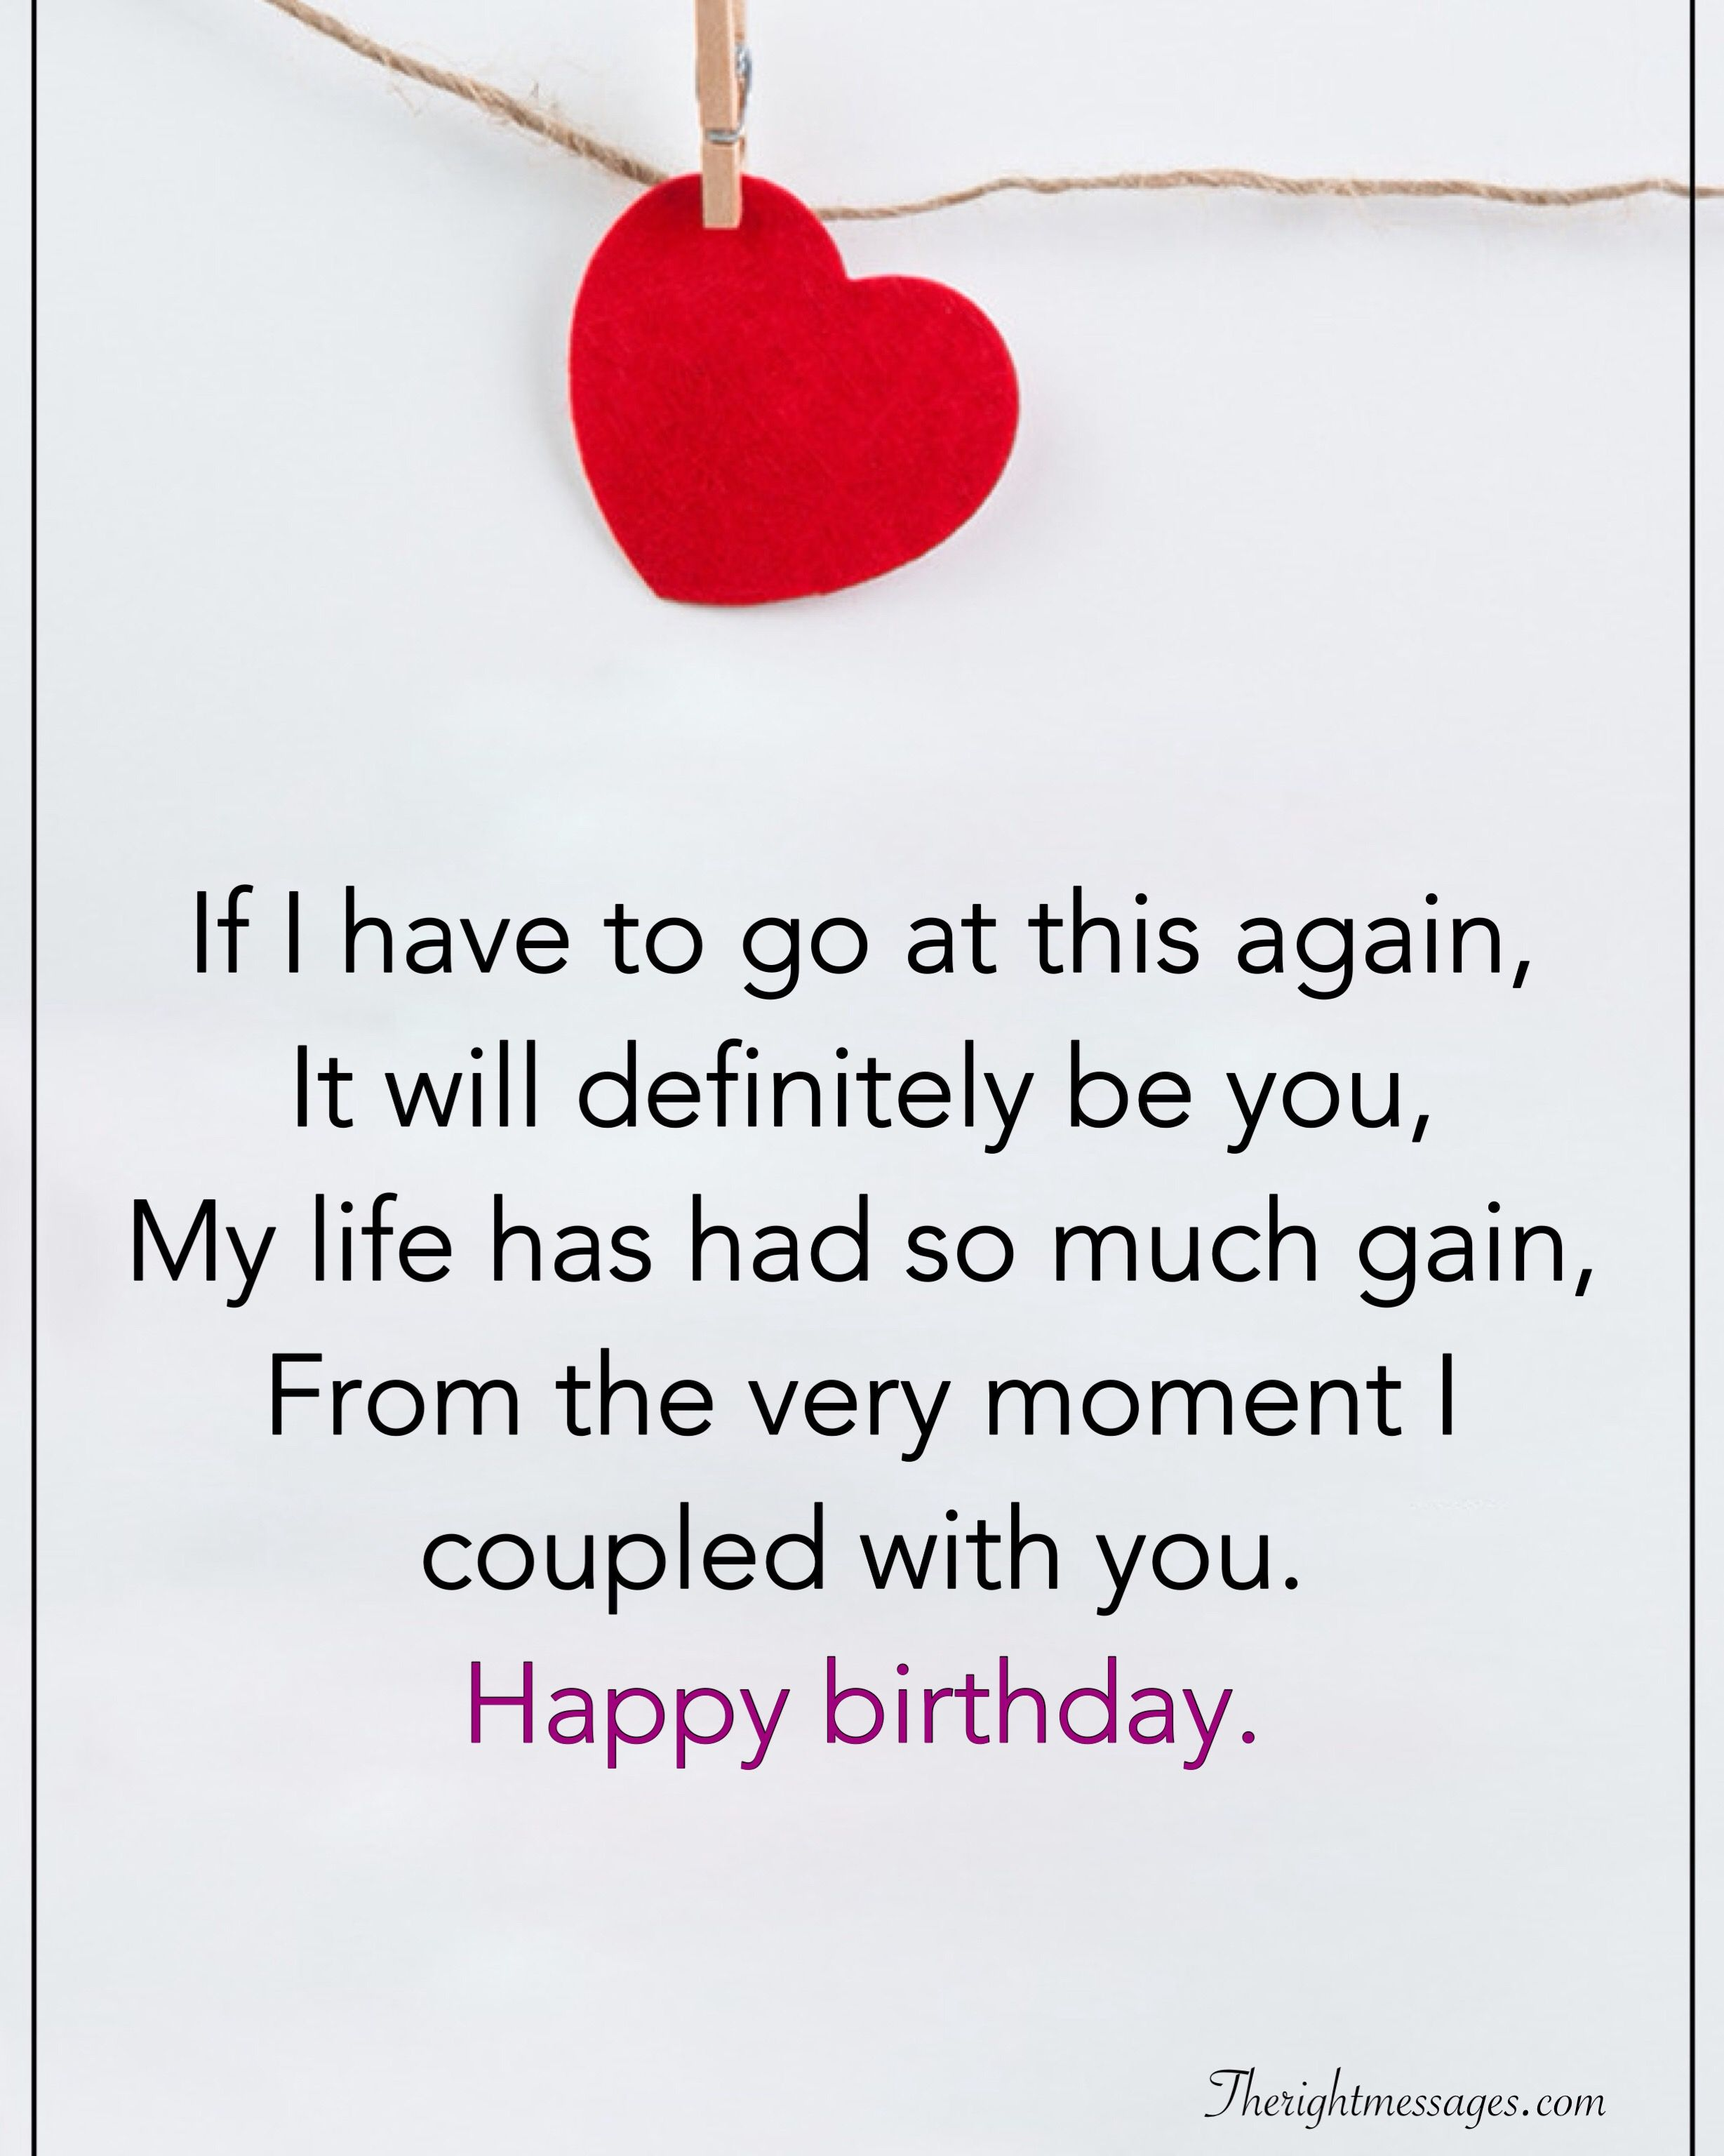 28 Birthday Wishes For Your Husband Romantic Funny Poems The Right Messages Birthday Poems For Husband Birthday Wish For Husband Birthday Poems